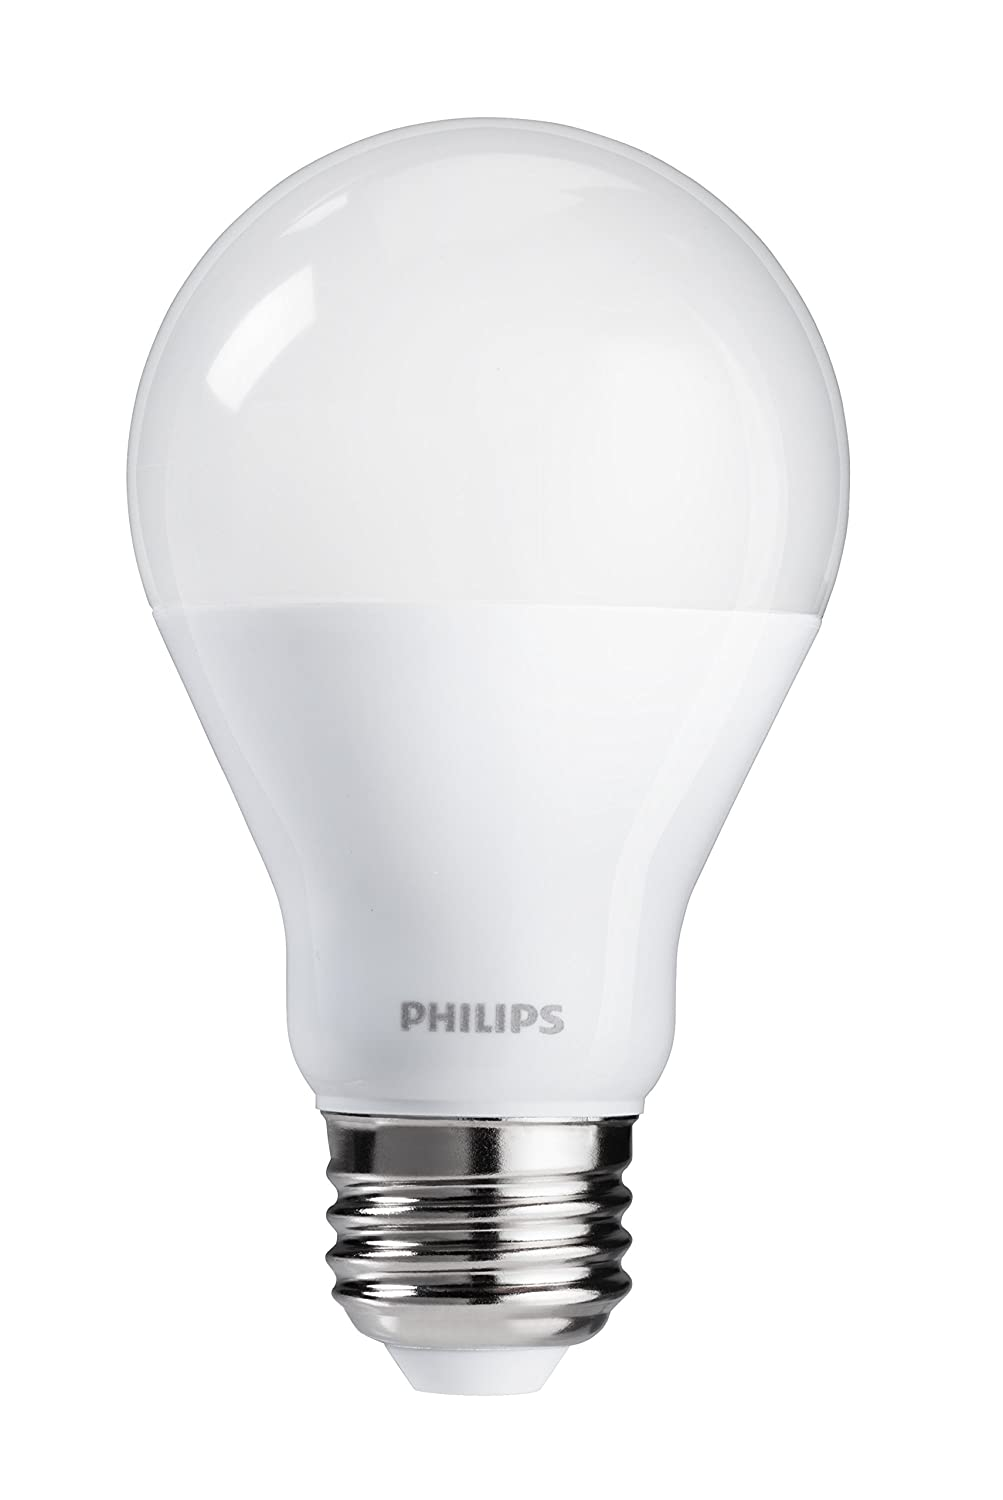 Philips 455790 40 watt equivalent dimmable a19 led light bulb philips 455790 40 watt equivalent dimmable a19 led light bulb daylight 1 pack amazon parisarafo Gallery